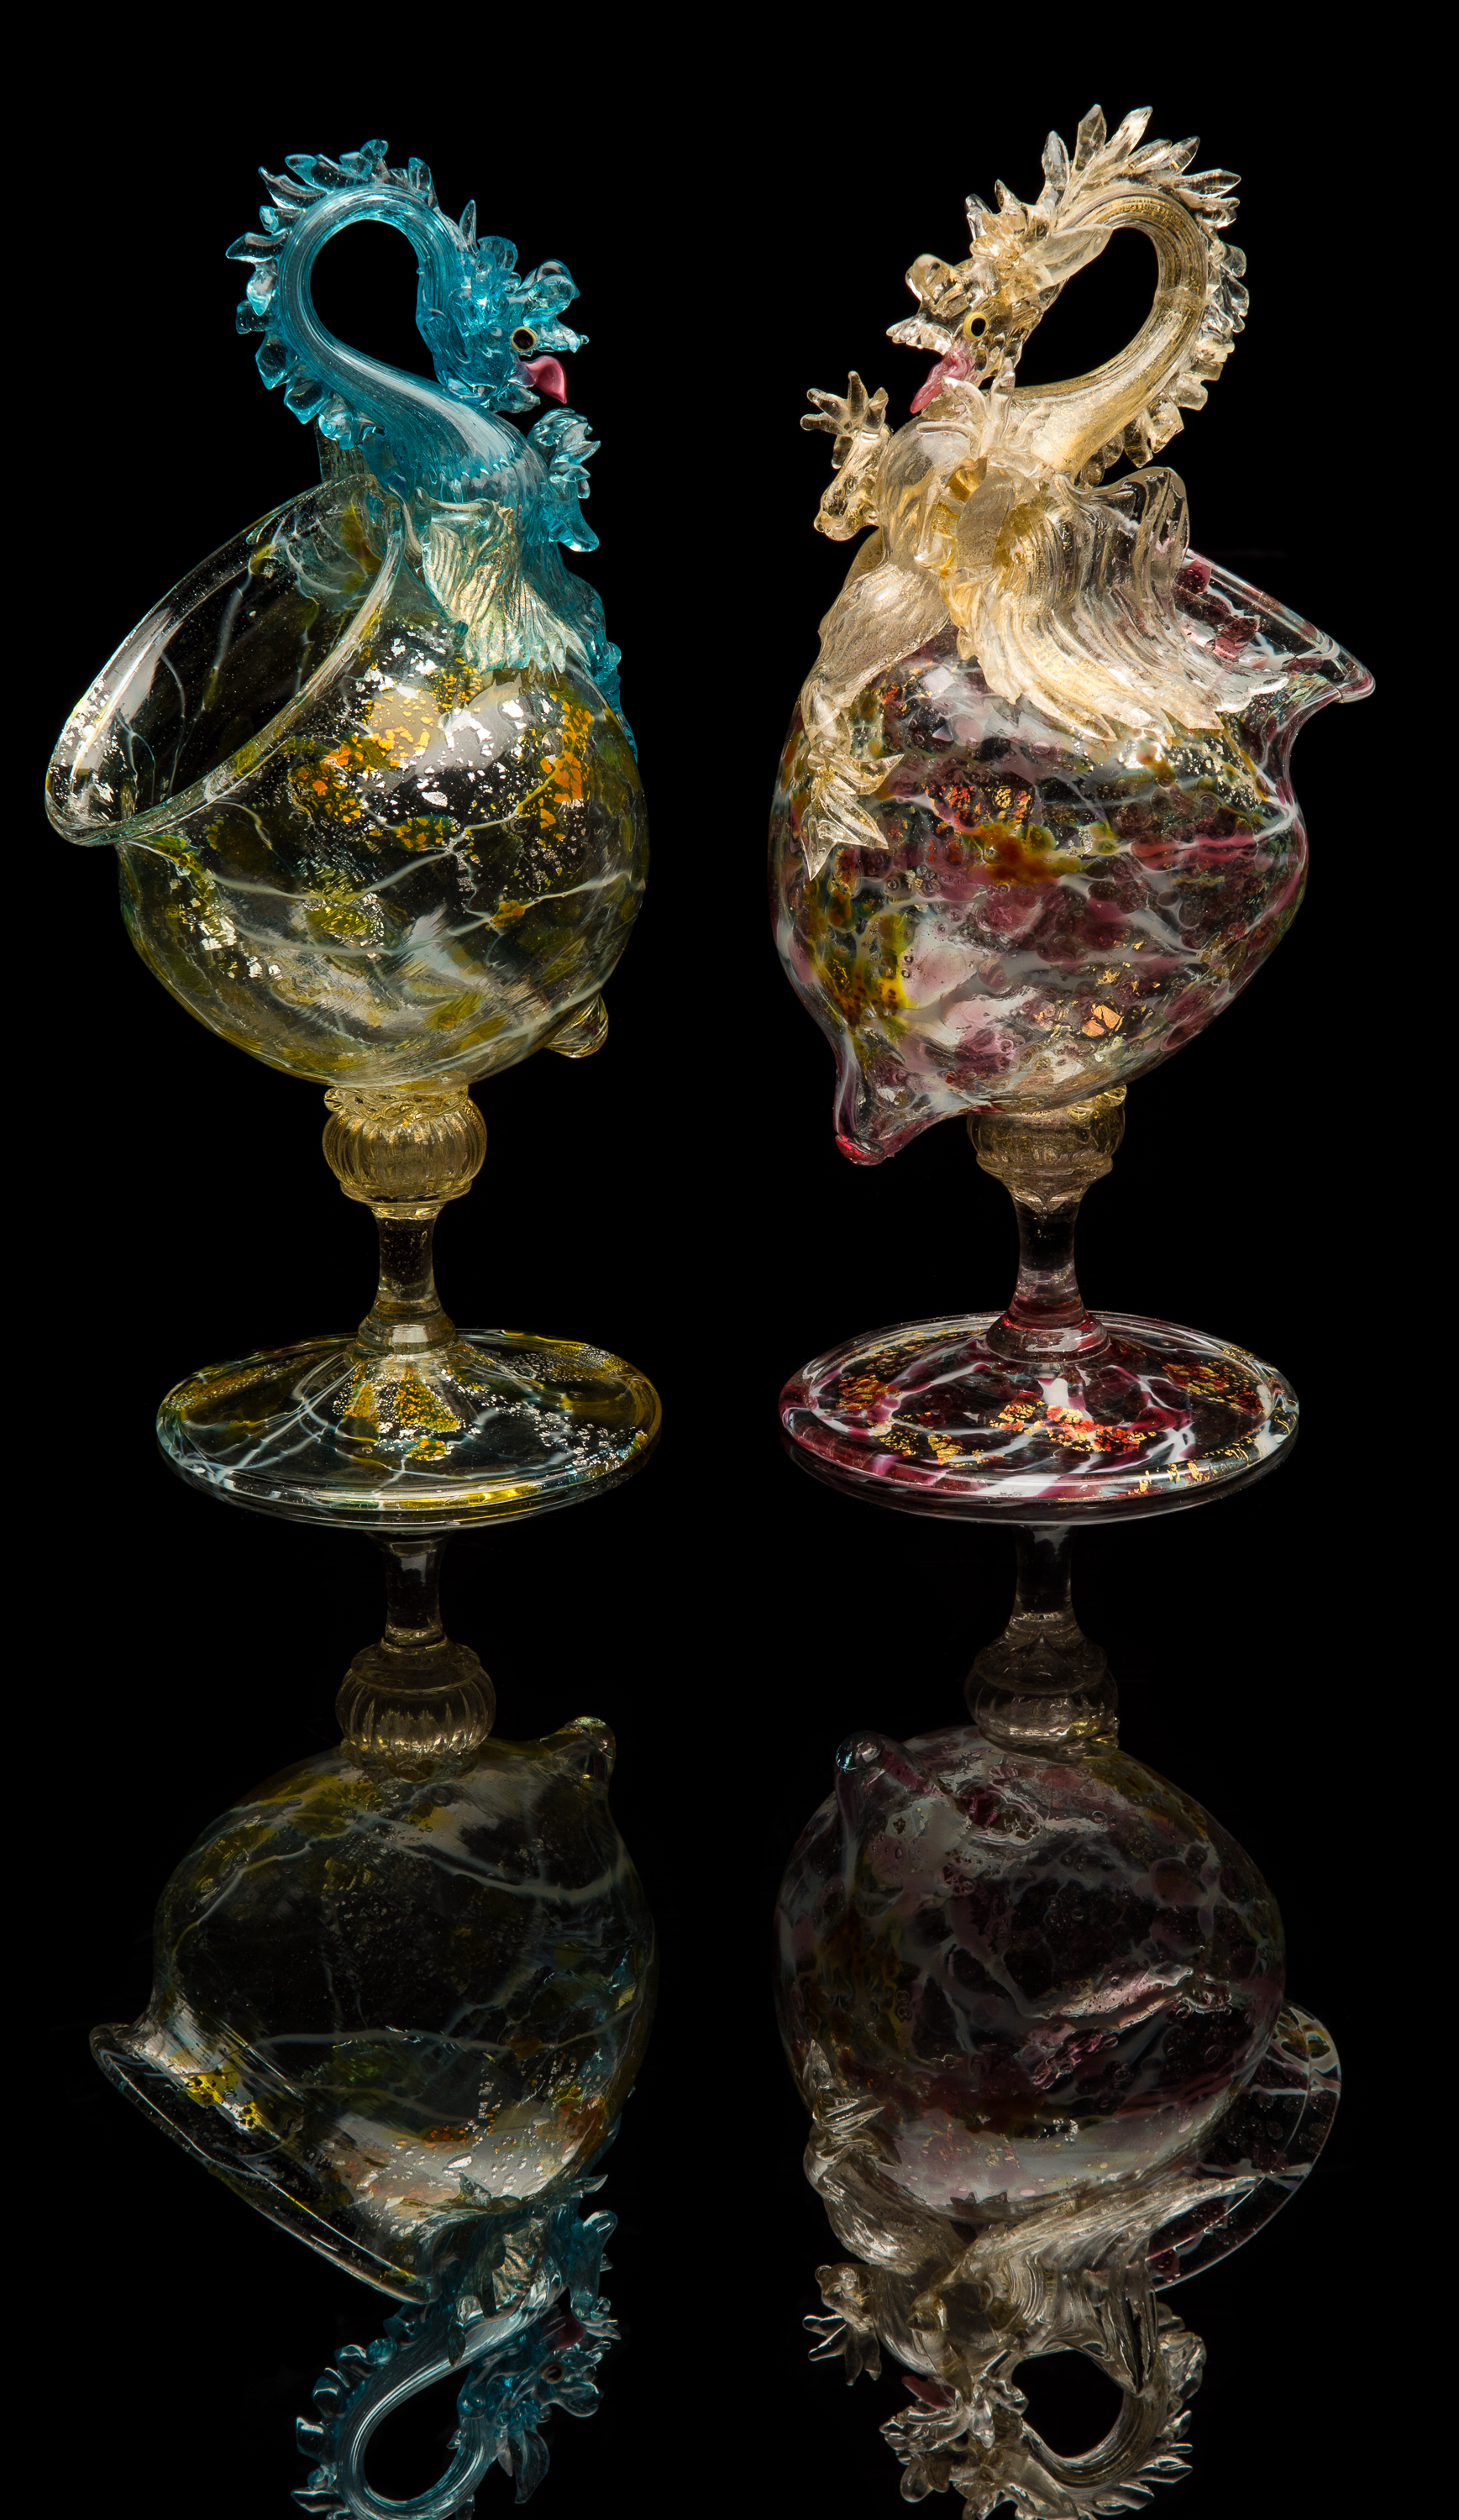 Fratelli Toso,  Multicolored Offset Standing Bowls with Dragons  (1880, glass, 12.25 inches), VV.774